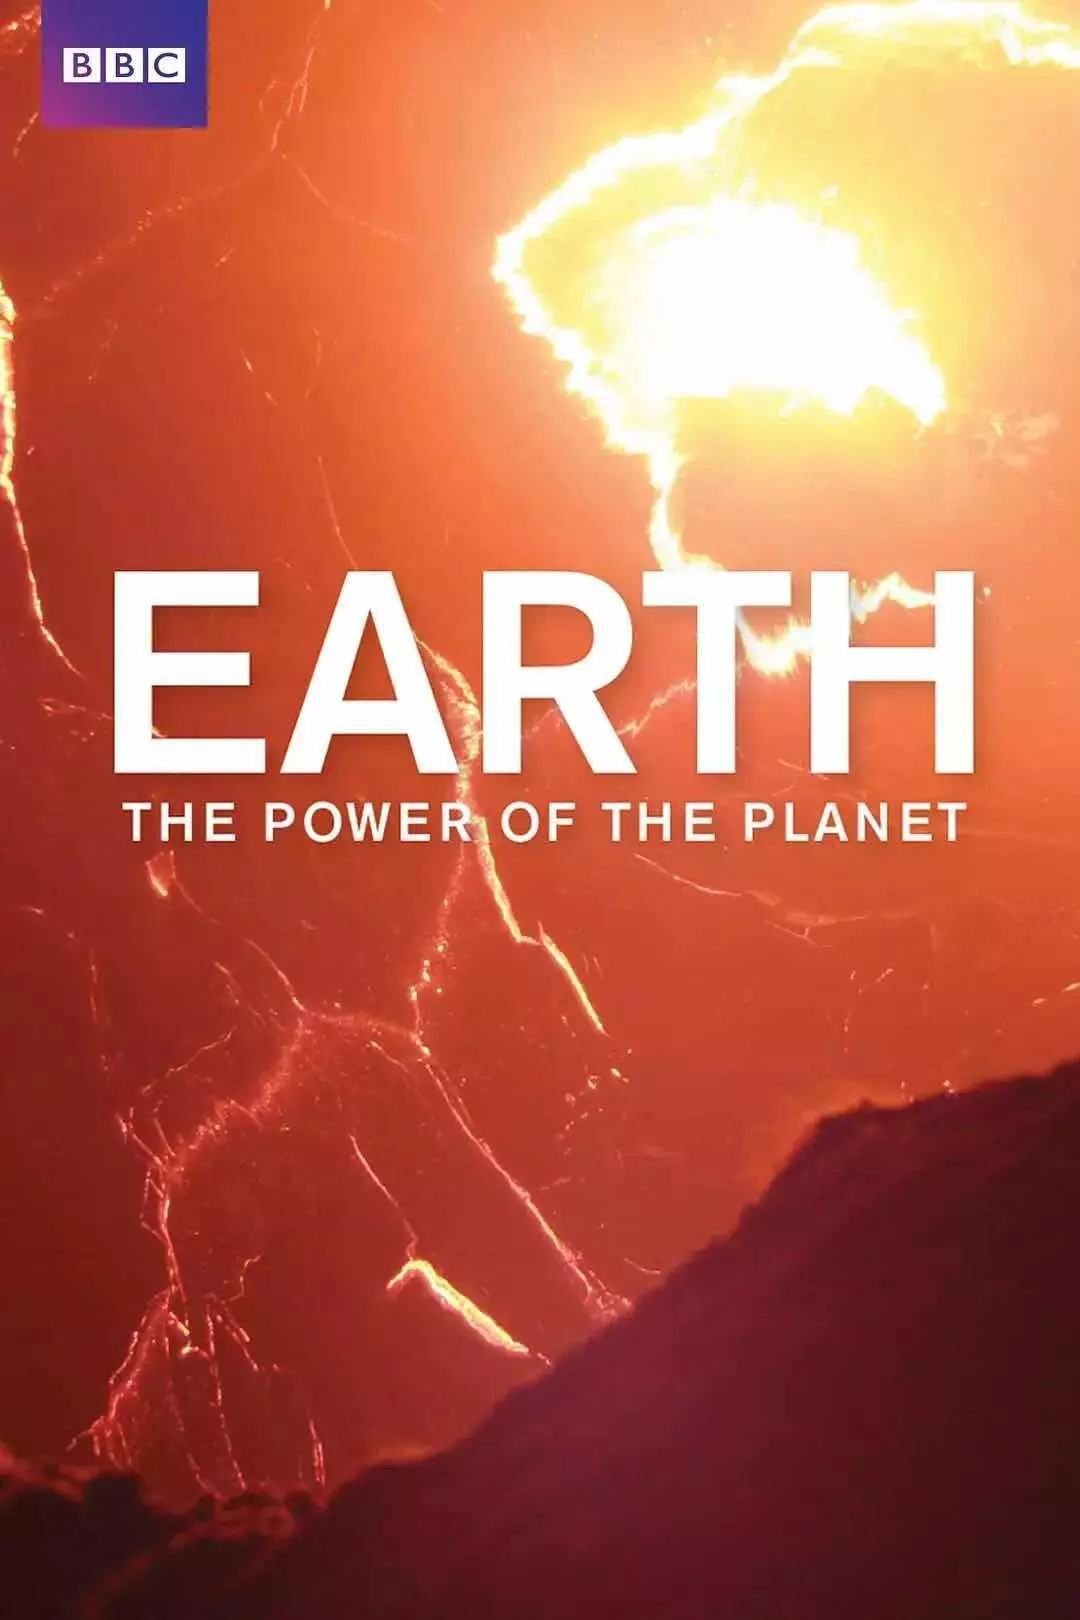 earth the power of the planet Earth: the power of the planet earth: the power of the planet is a bbc documentary series presented by iain stewart, telling the story of how earth works and what makes it so special the series consists of five episodes the first four episodes look at the four most powerful forces that shape the earth - volcano, atmosphere, ice and oceans - and explore their central roles in the earth's.